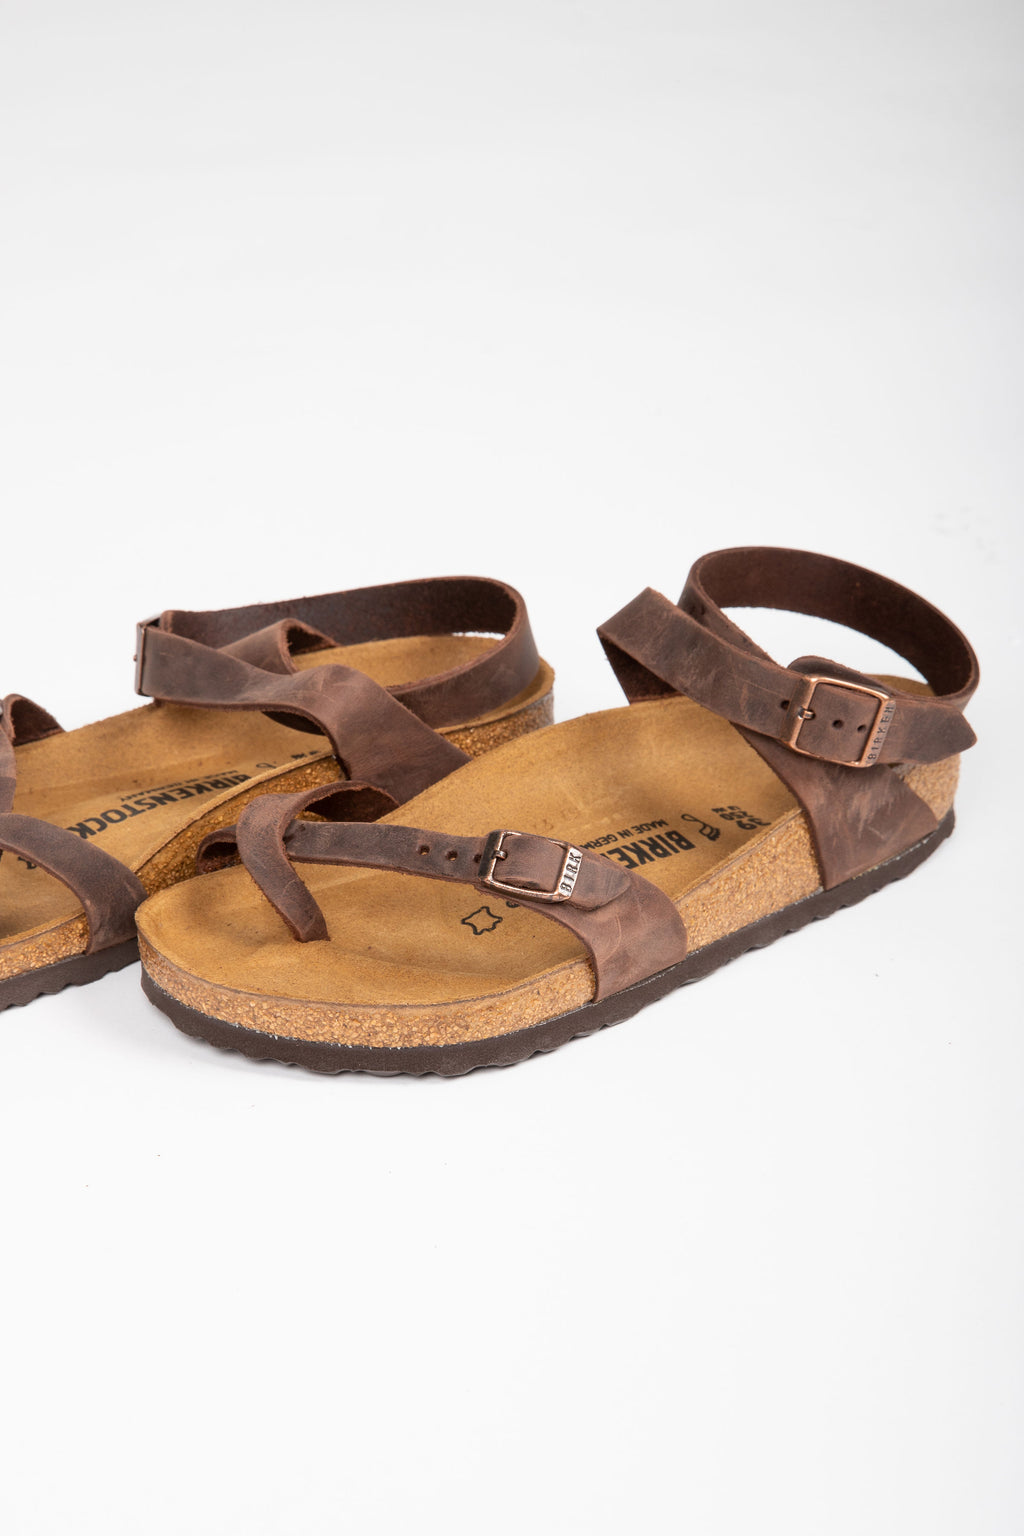 Birkenstock: Yara Oiled Leather in Habana (Regular Fit)